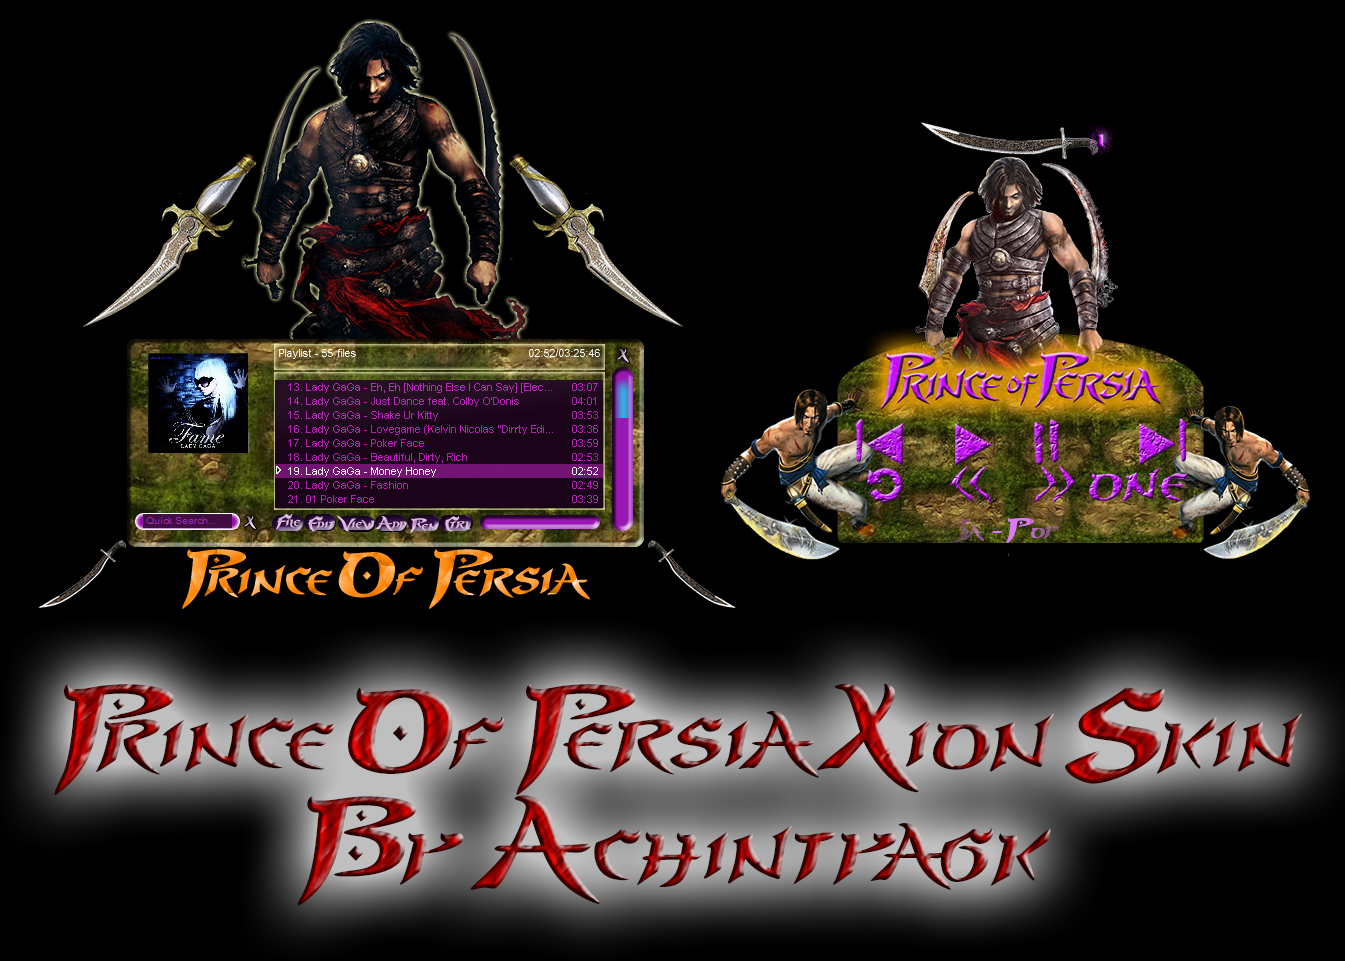 Prince Of Persia Xion Skin by achintyagk